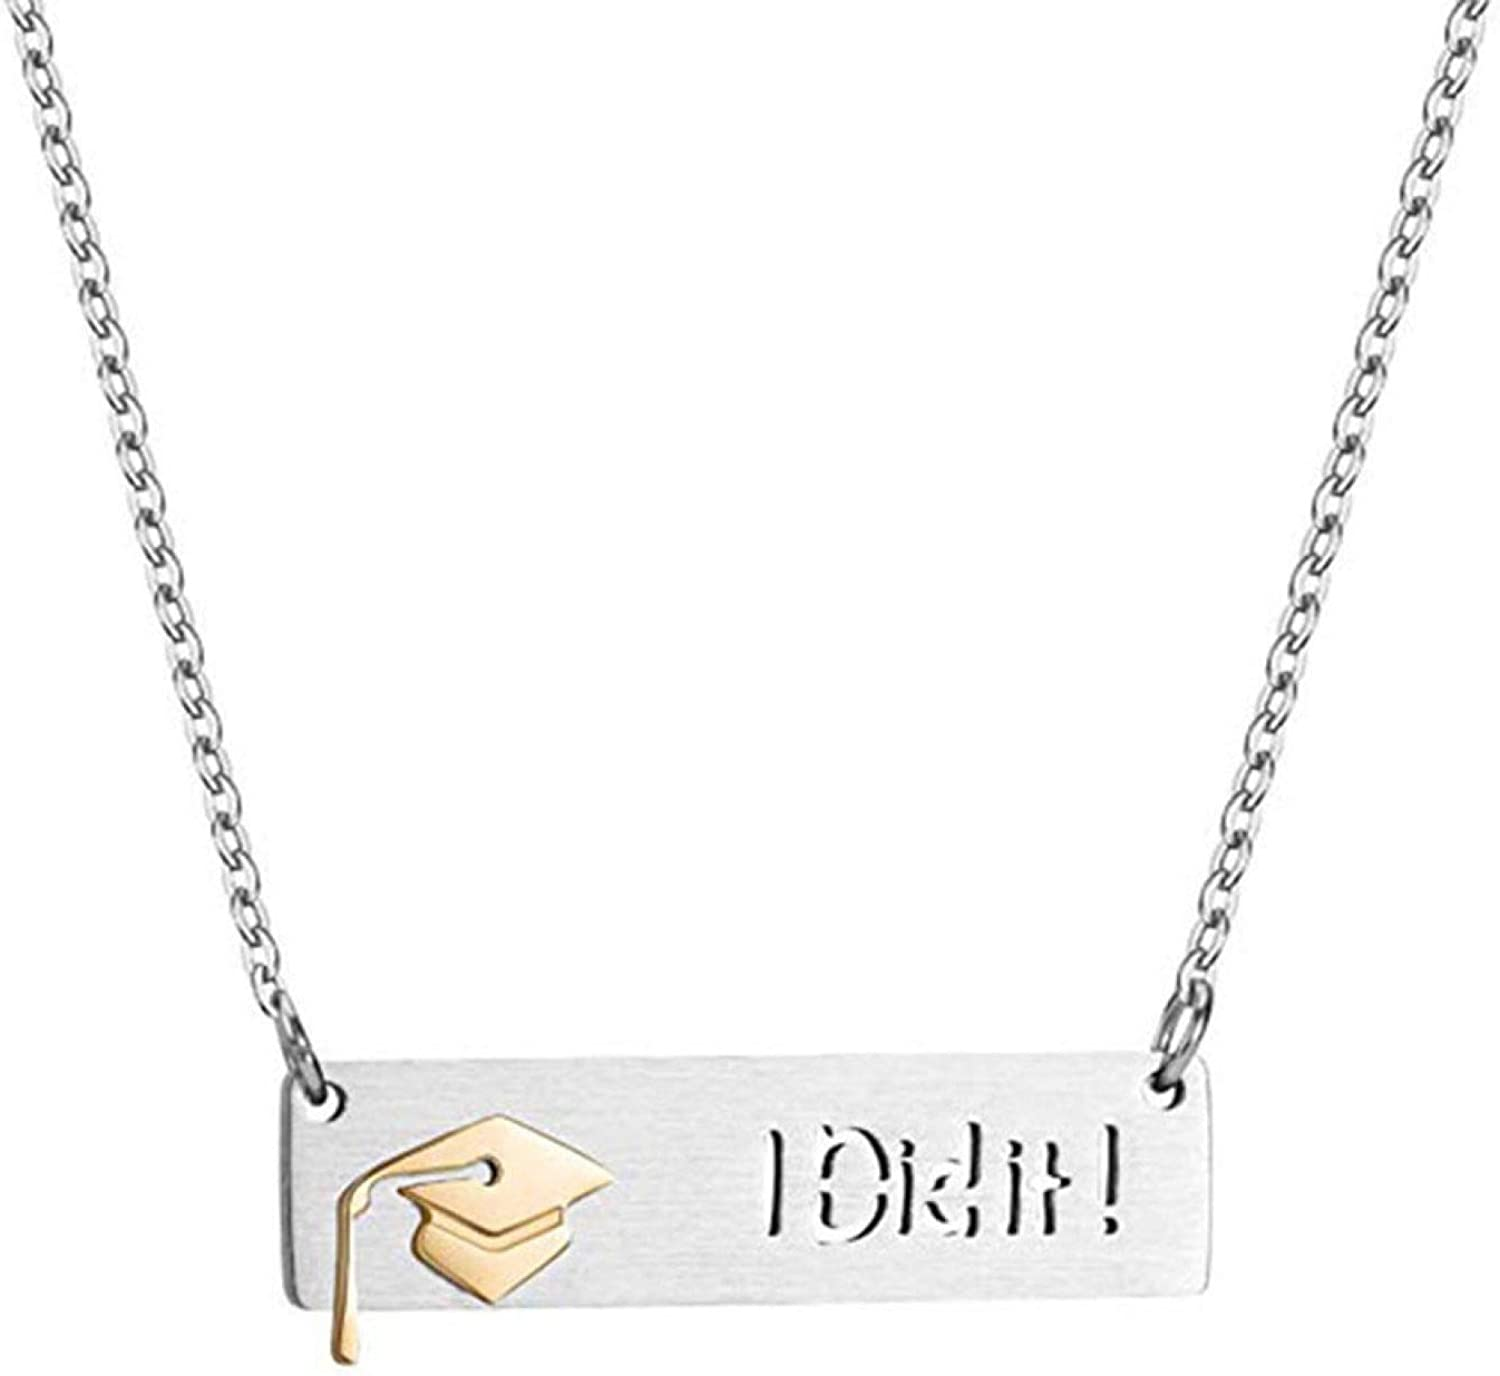 Unisex Stainless Steel Genuine Graduation Cap I Max 47% OFF Chain Neck Dit Dangle It